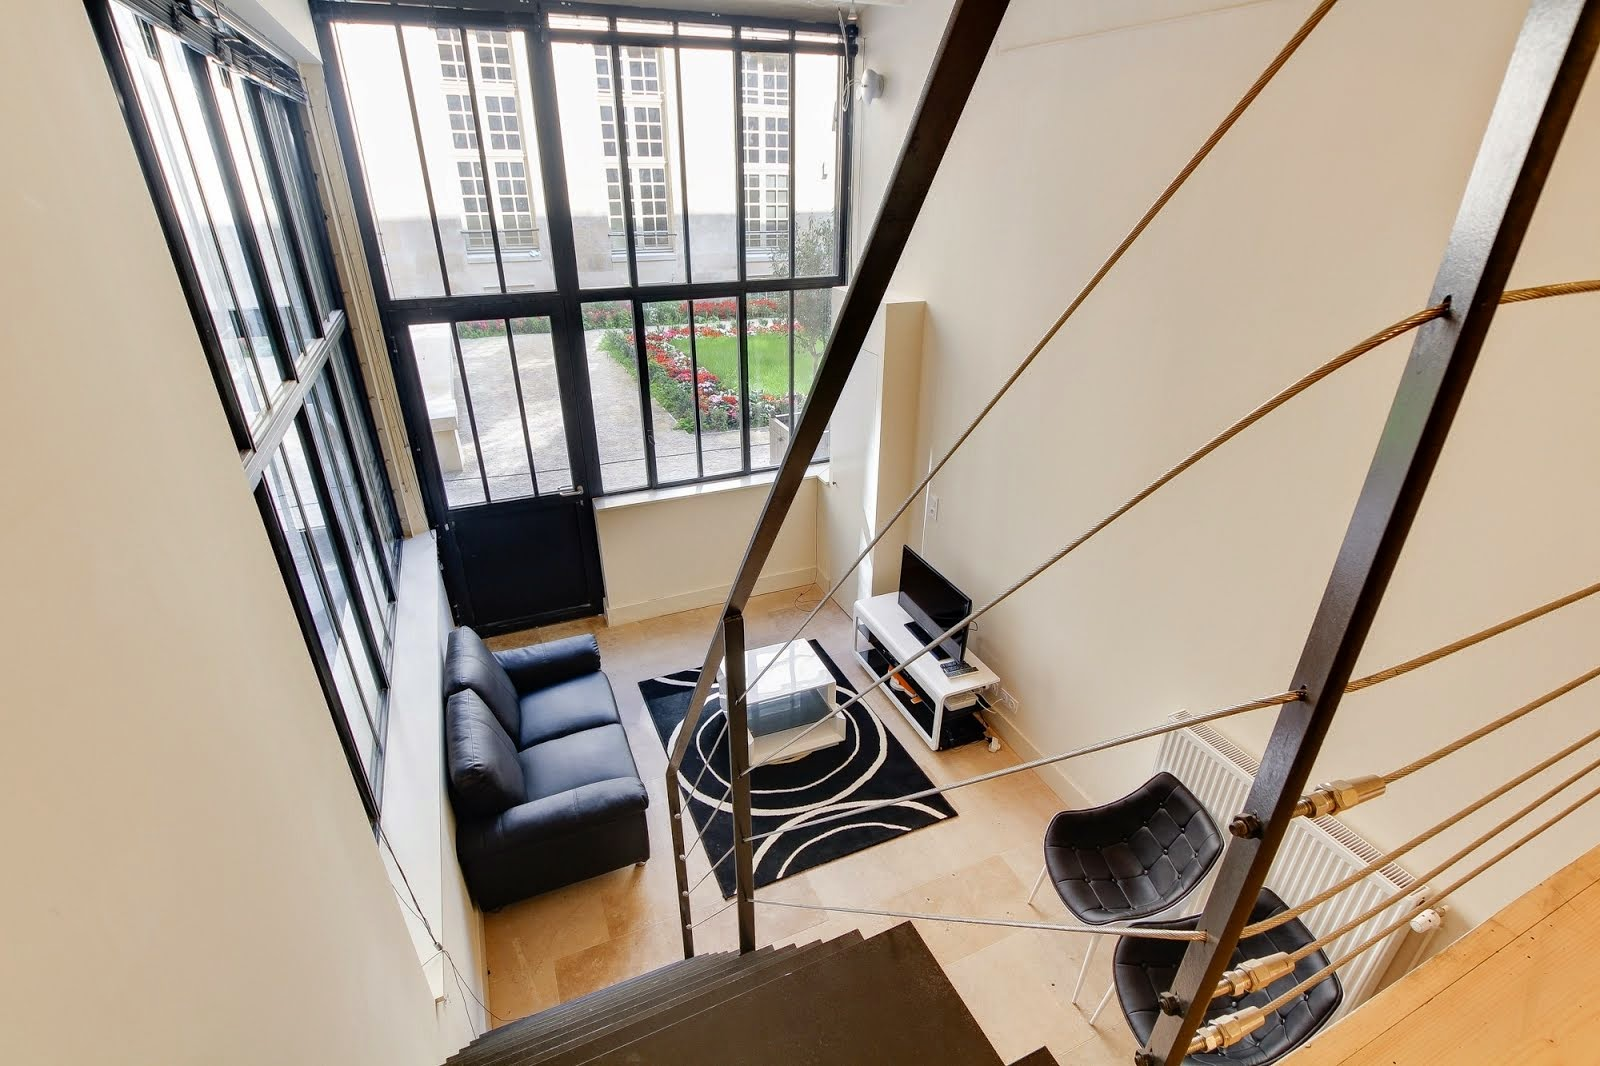 Loft in Paris to rent / Loft à louer à Paris